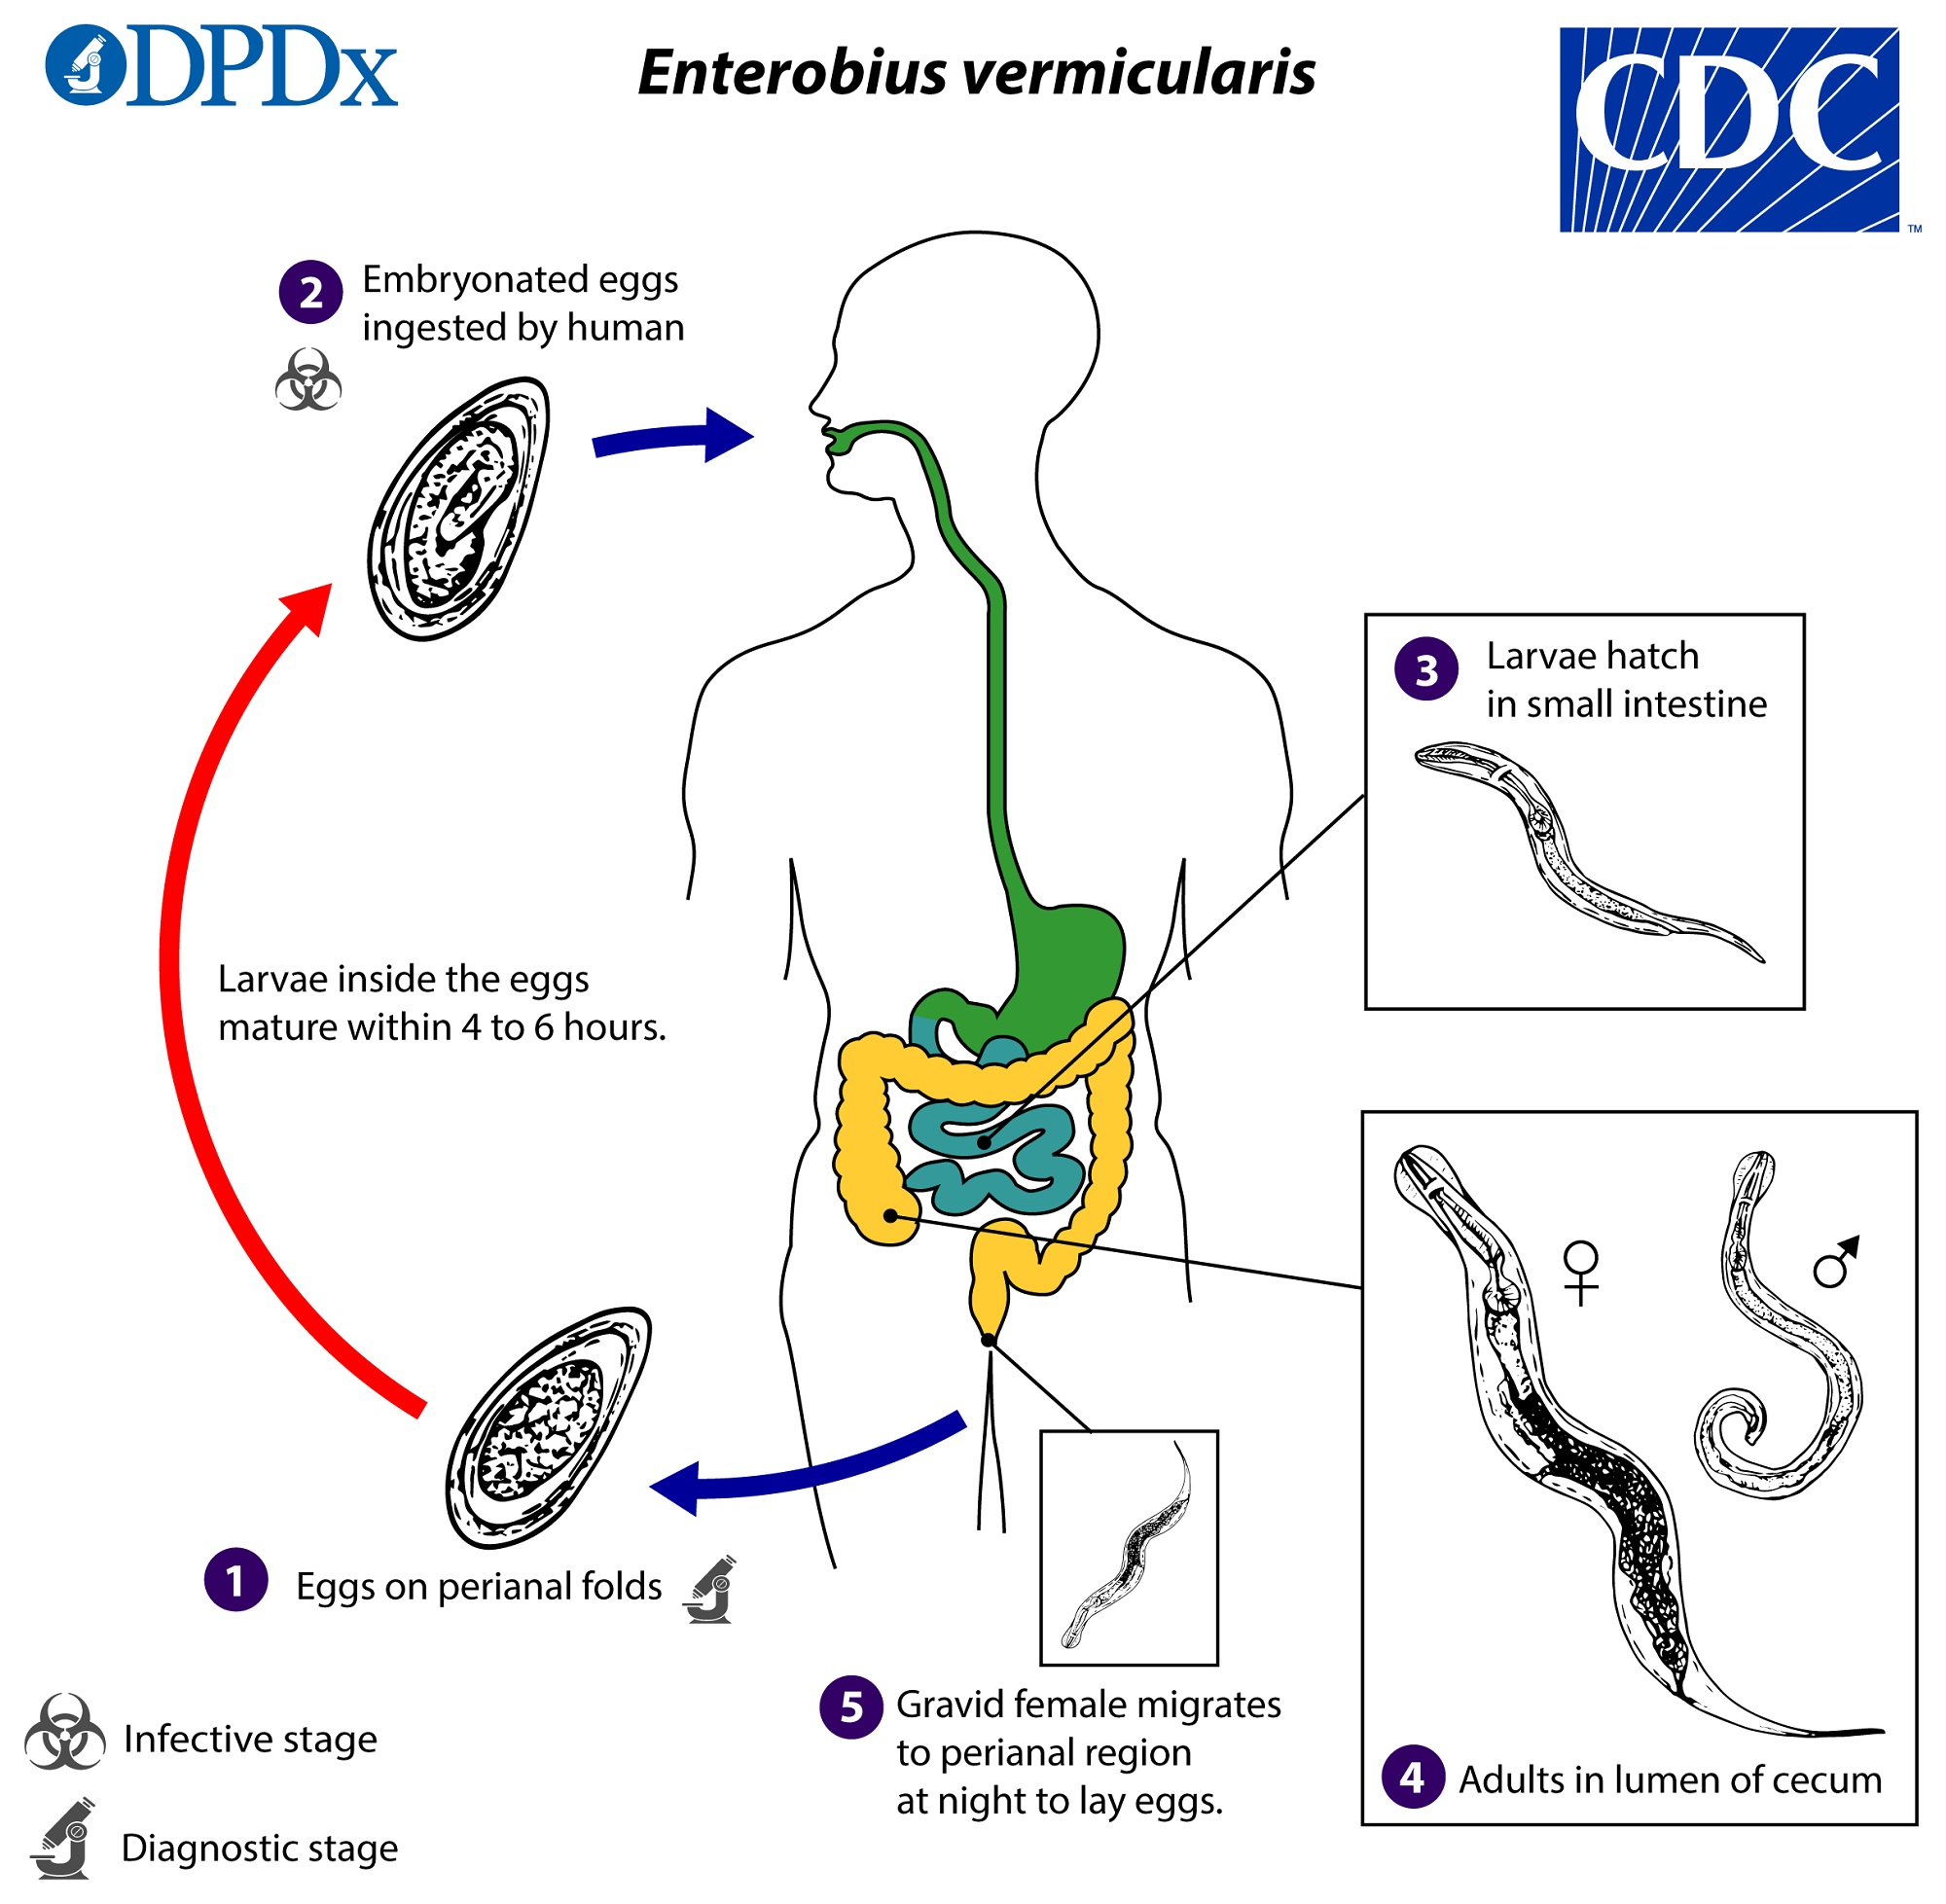 enterobius vermicularis( the pinworm) is shingles and hpv virus